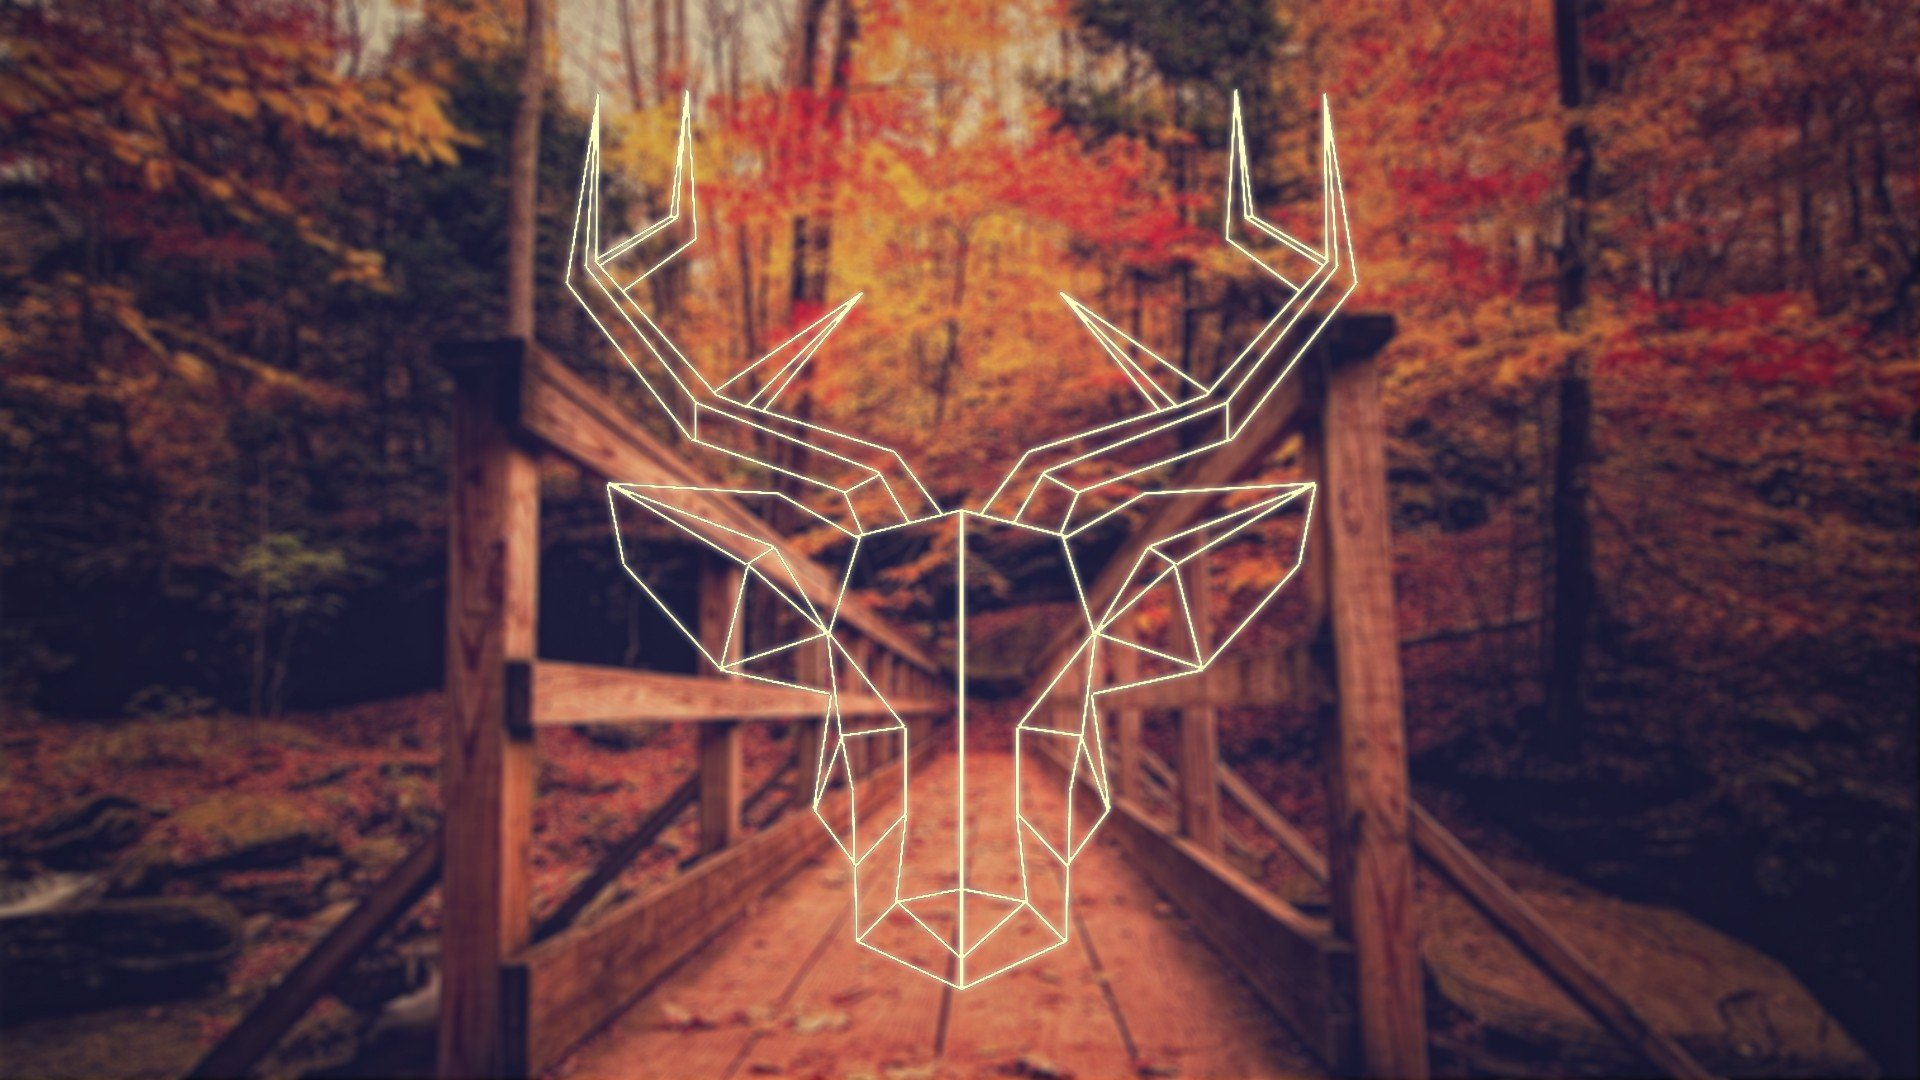 Download 3d Wallpaper For Computer Fall Deer Polygon Art Hipster Photography Simple